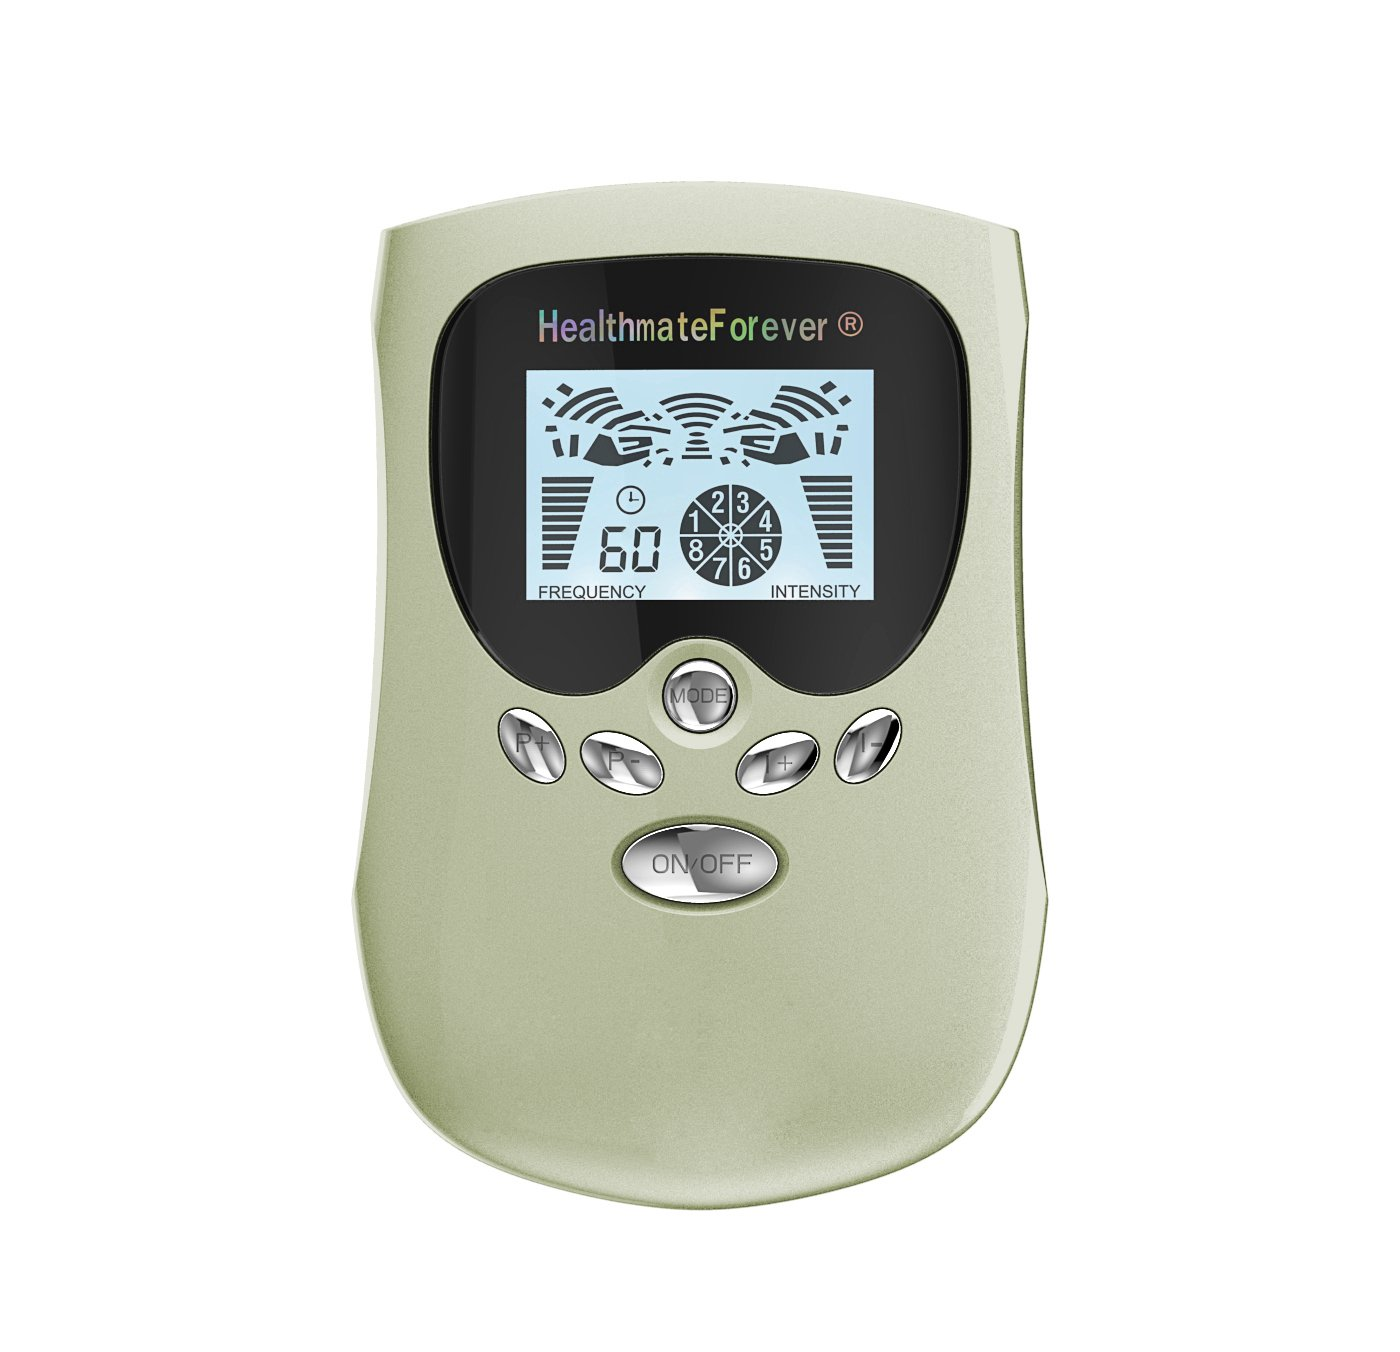 PM8 HealthmateForever TENS Unit Electrical Muscle Stimulator Green + 5 Pairs of Pads